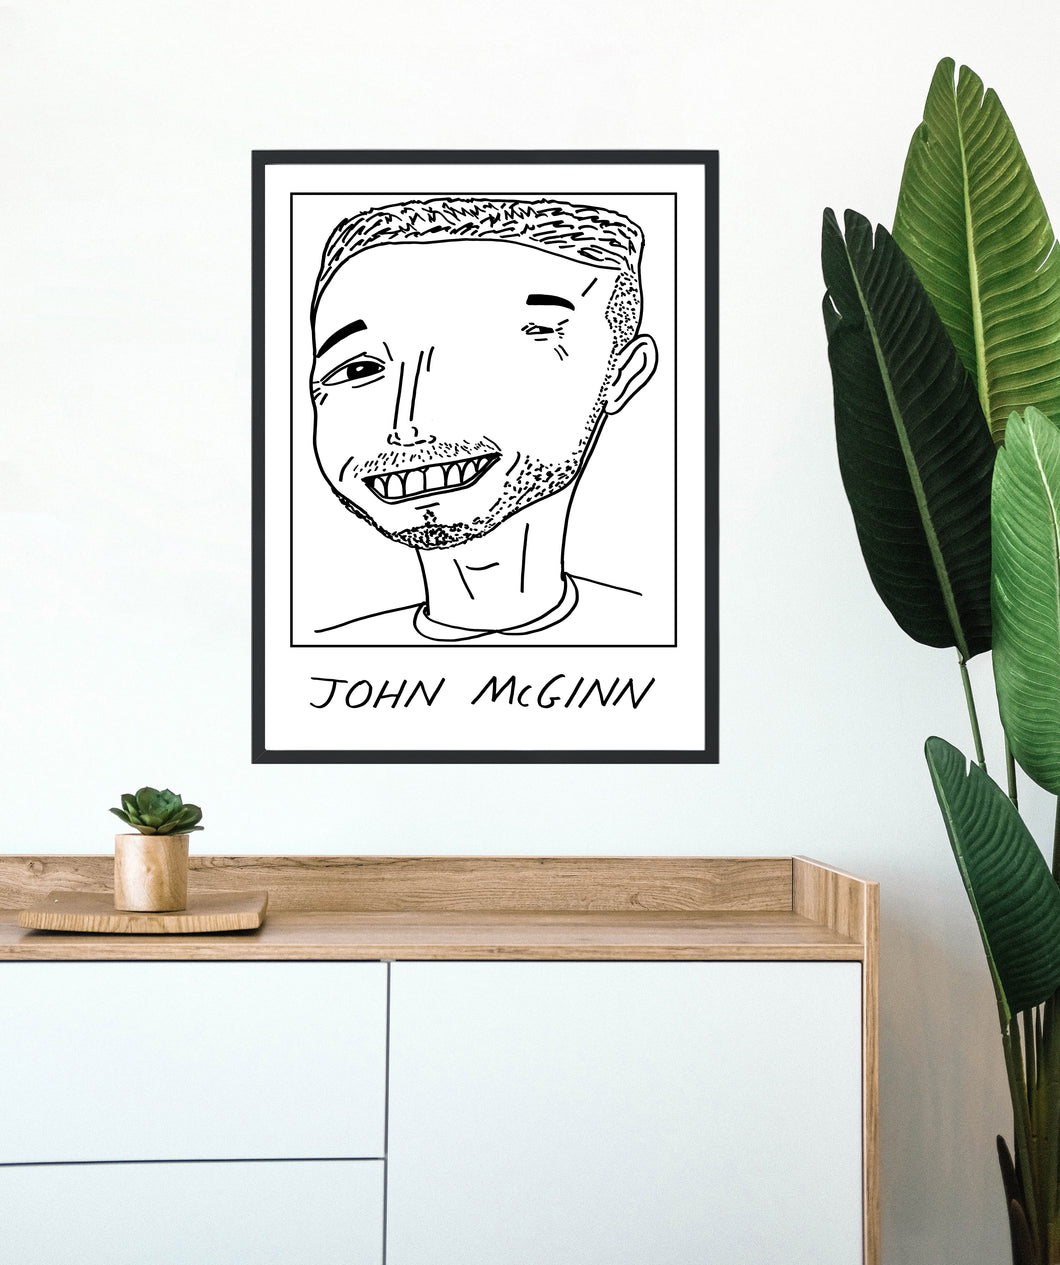 Badly Drawn Footballers - John McGinn - Poster - 3 FOR 2